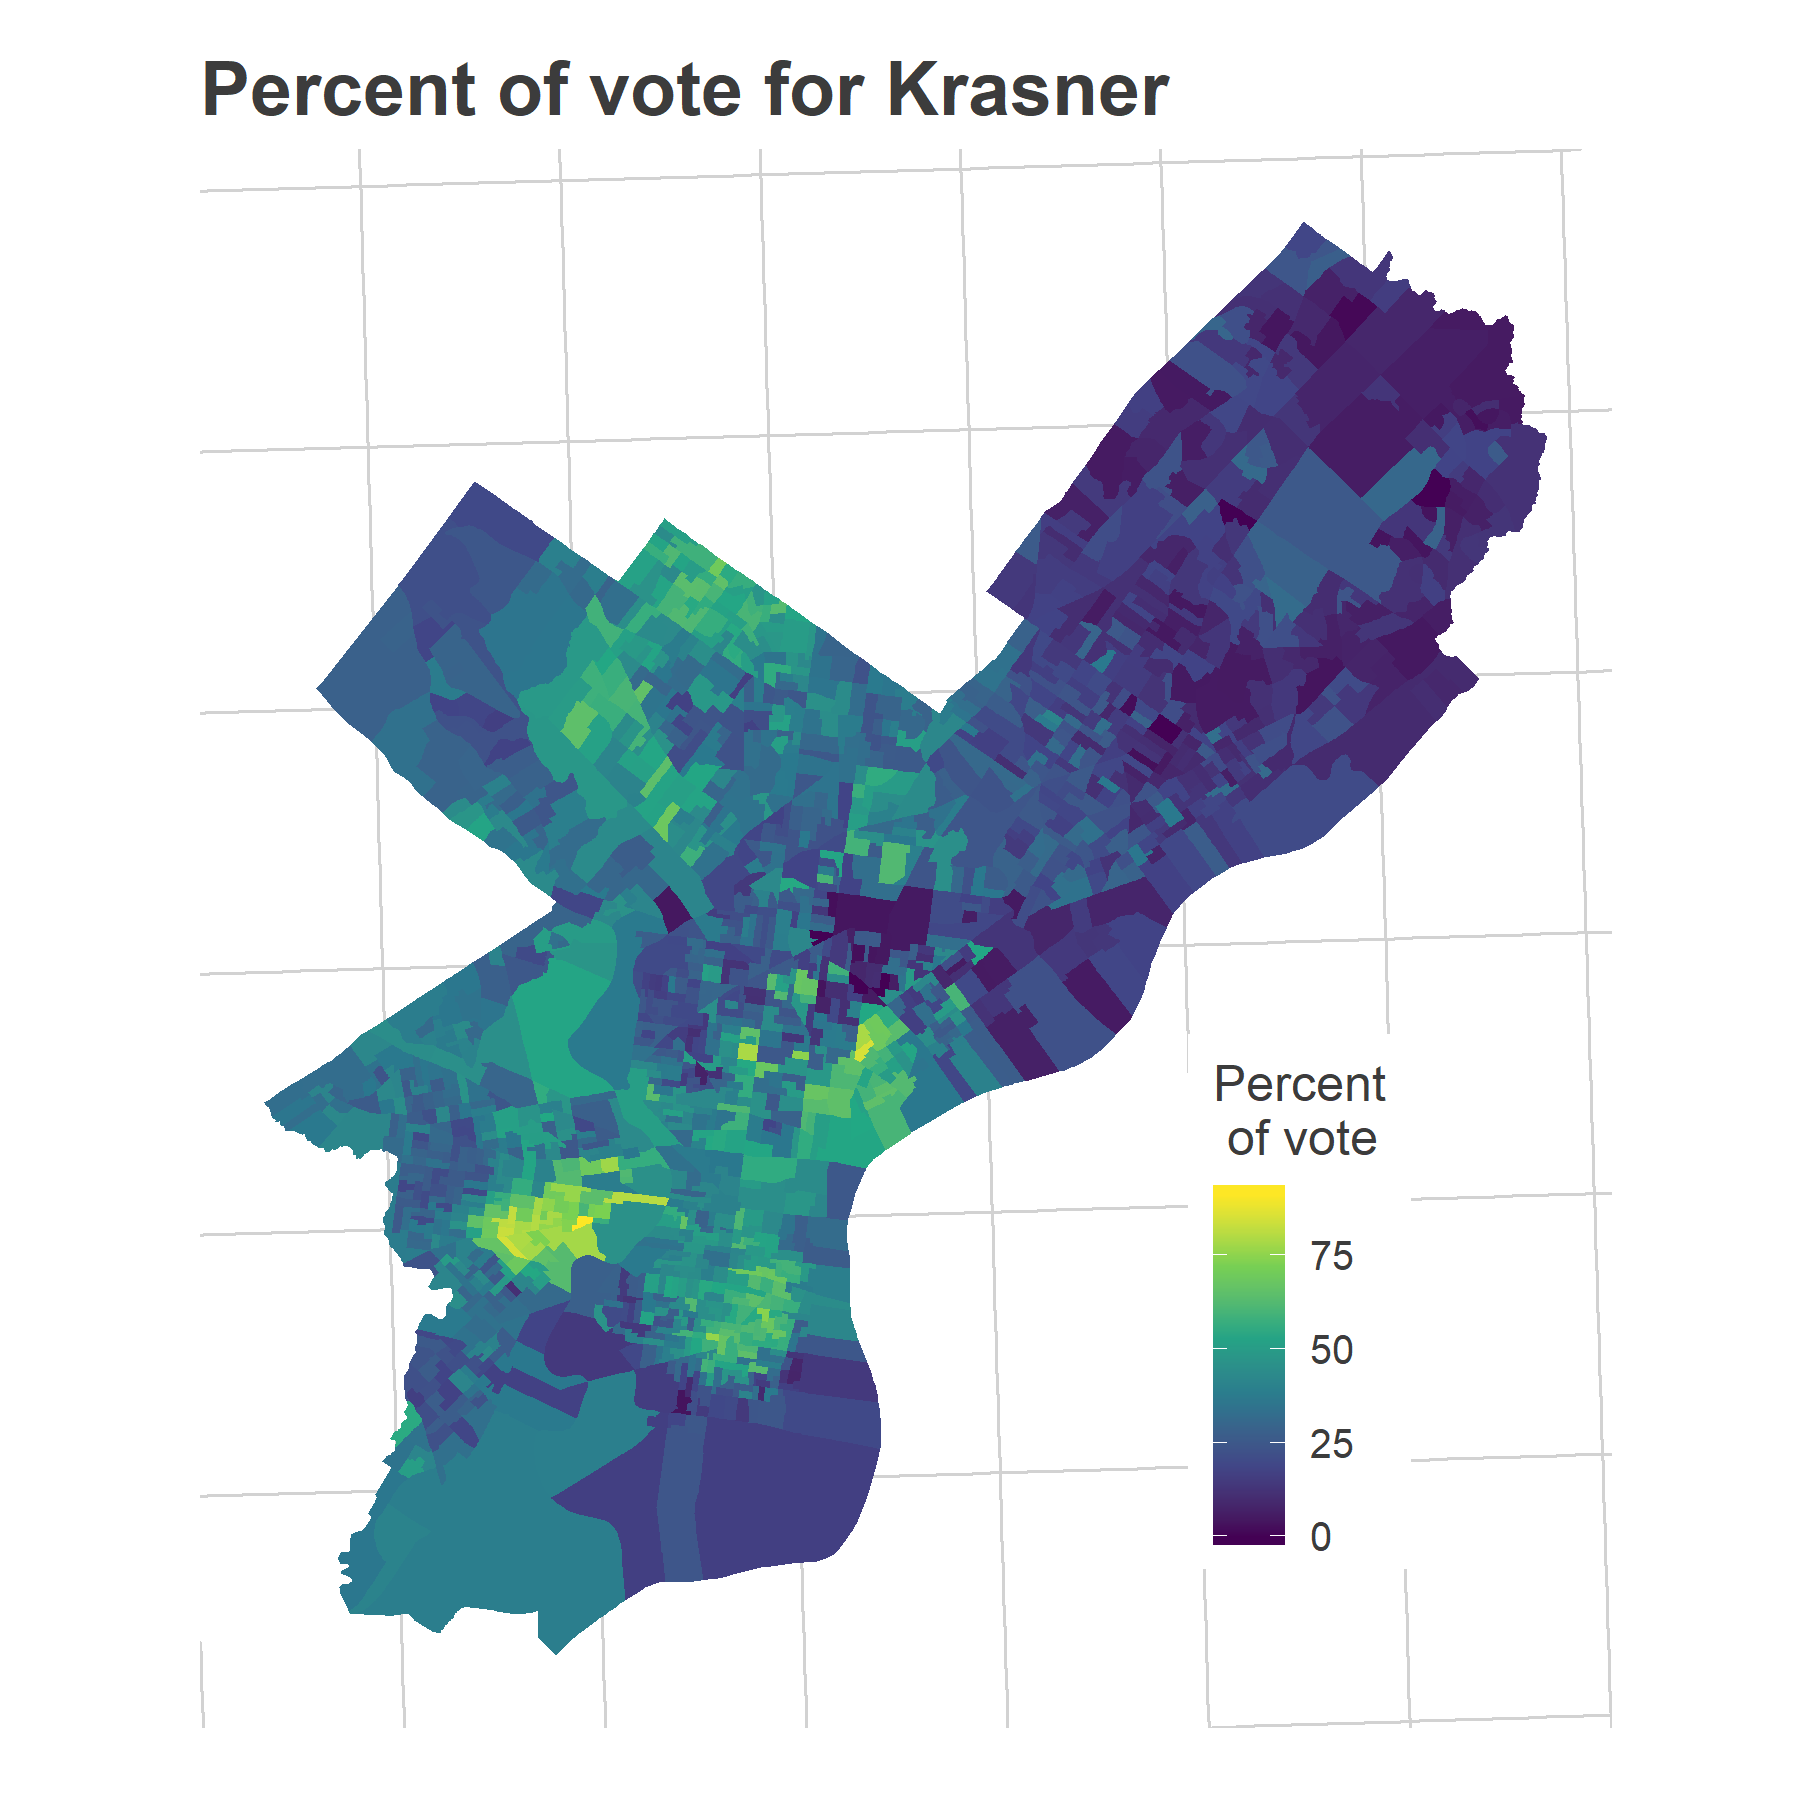 plot of chunk krasner_results